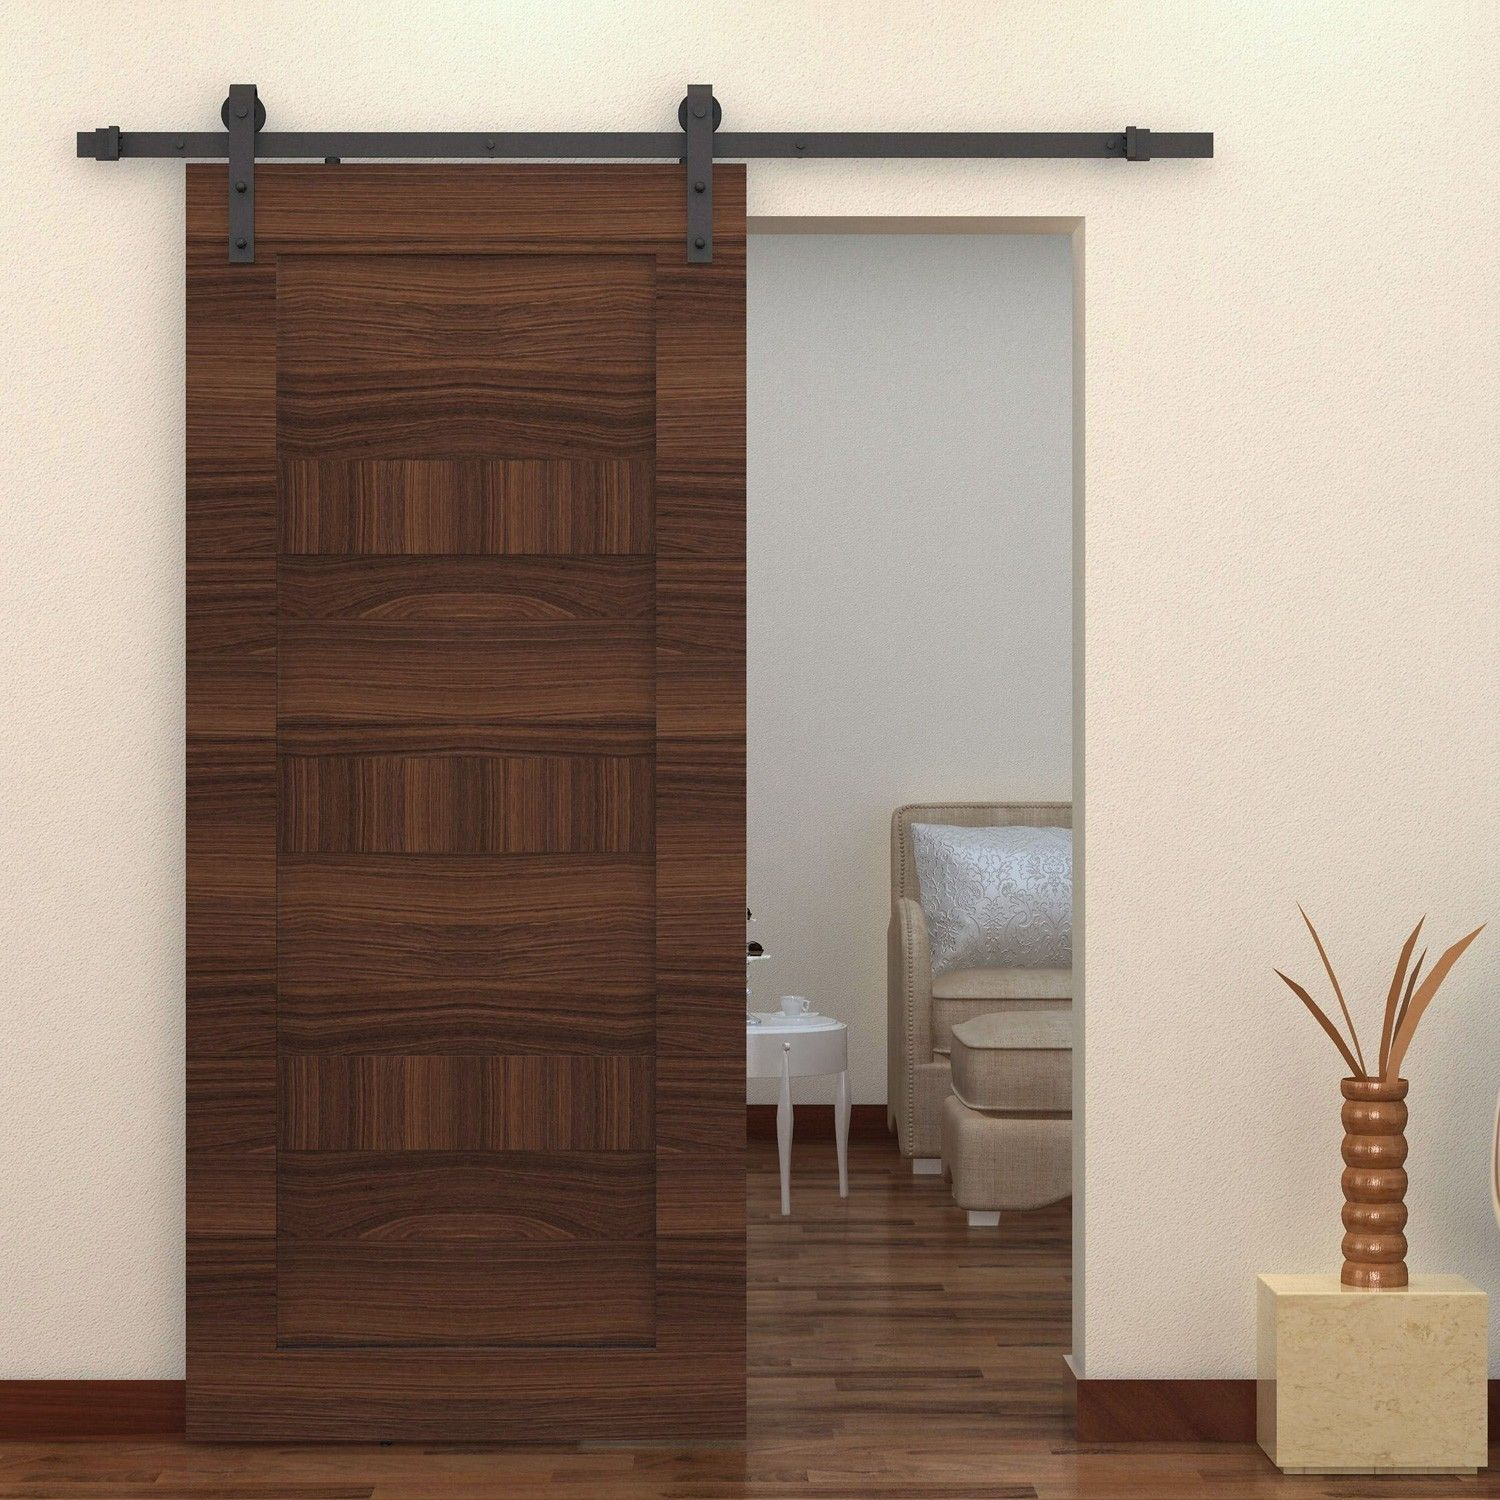 Sliding interior barn doors for sale - Rustic Interior Interior Sliding Barn Doors Hardware